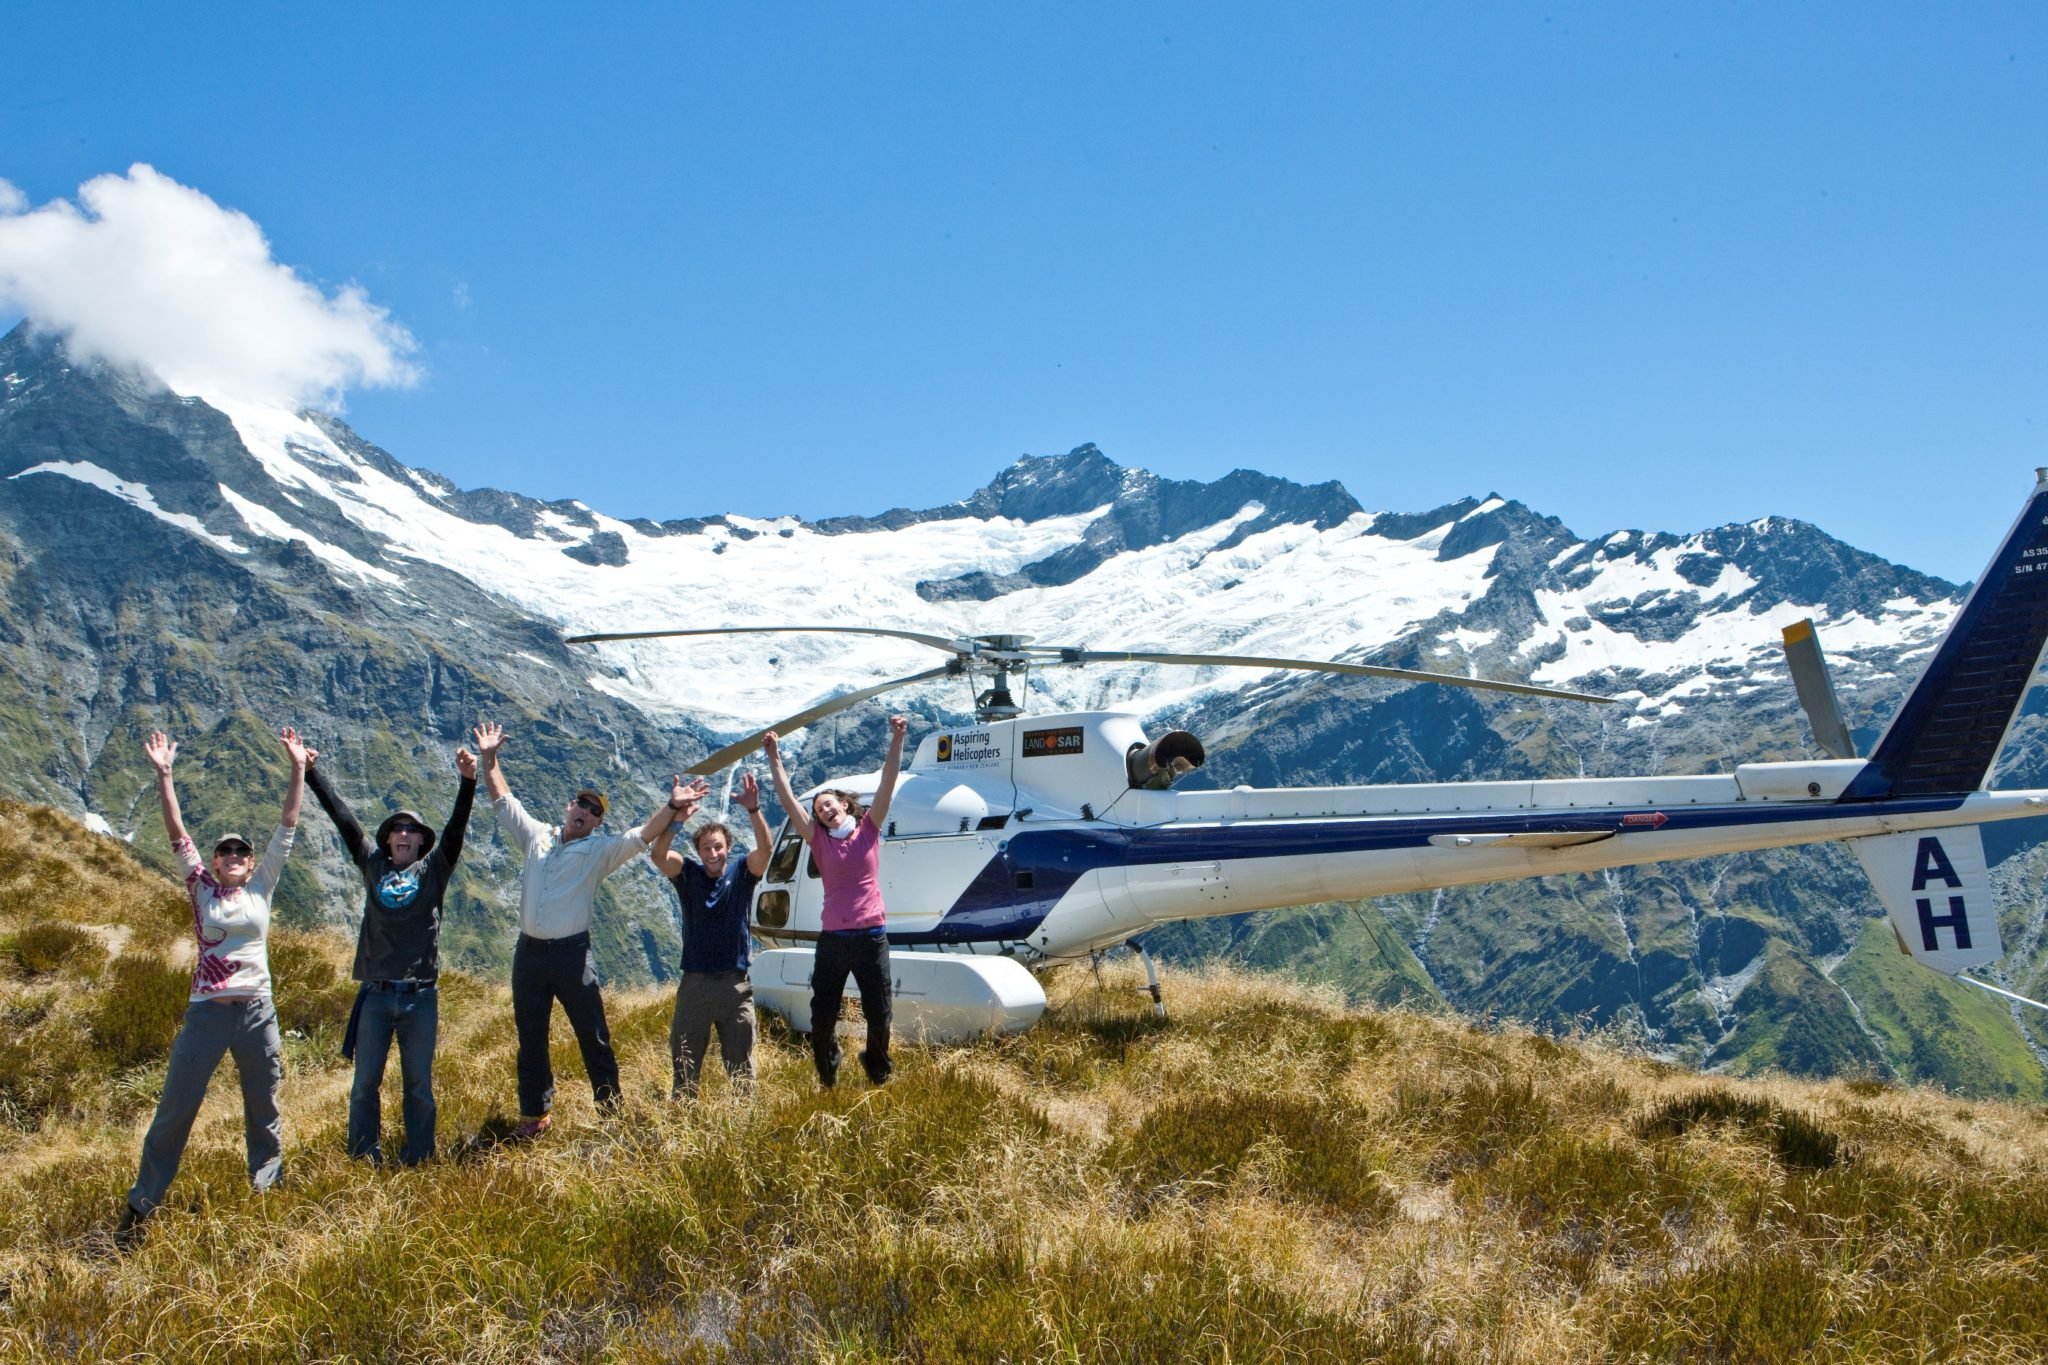 Enjoying a helicopter trip up onto the glacier in Mount Aspiring National Park